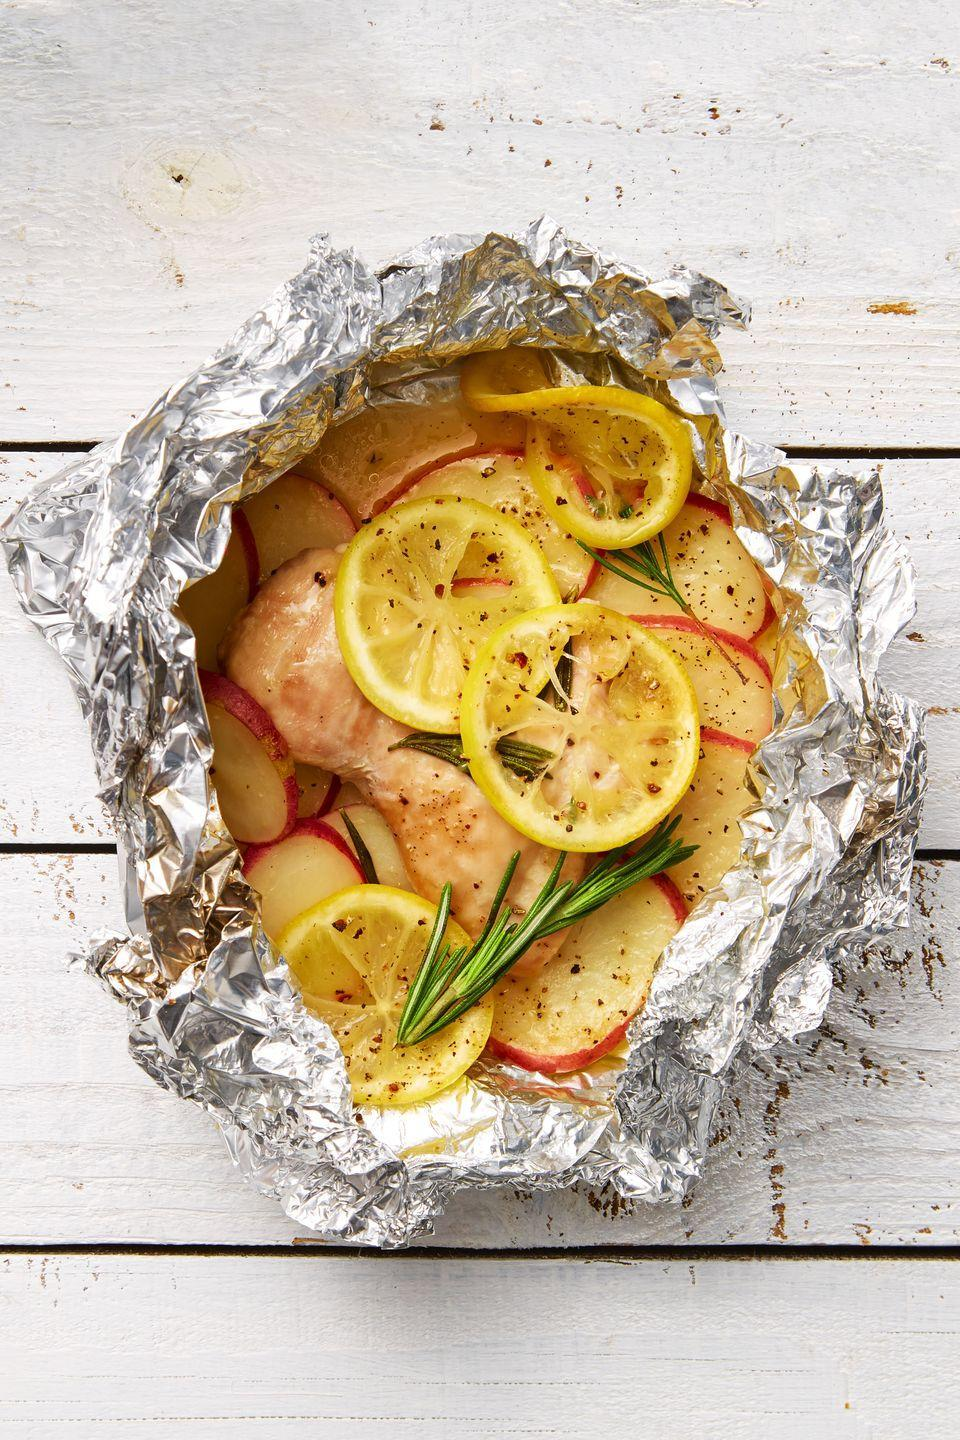 "<p>Dinner's more fun when you get to unwrap it. Oh, and did we mention zero cleanup?</p><p><em><a href=""https://www.goodhousekeeping.com/food-recipes/easy/a34154/lemon-rosemary-chicken-potatoes/"" rel=""nofollow noopener"" target=""_blank"" data-ylk=""slk:Get the recipe for Lemon-Rosemary Chicken and Potatoes »"" class=""link rapid-noclick-resp"">Get the recipe for Lemon-Rosemary Chicken and Potatoes »</a></em></p>"